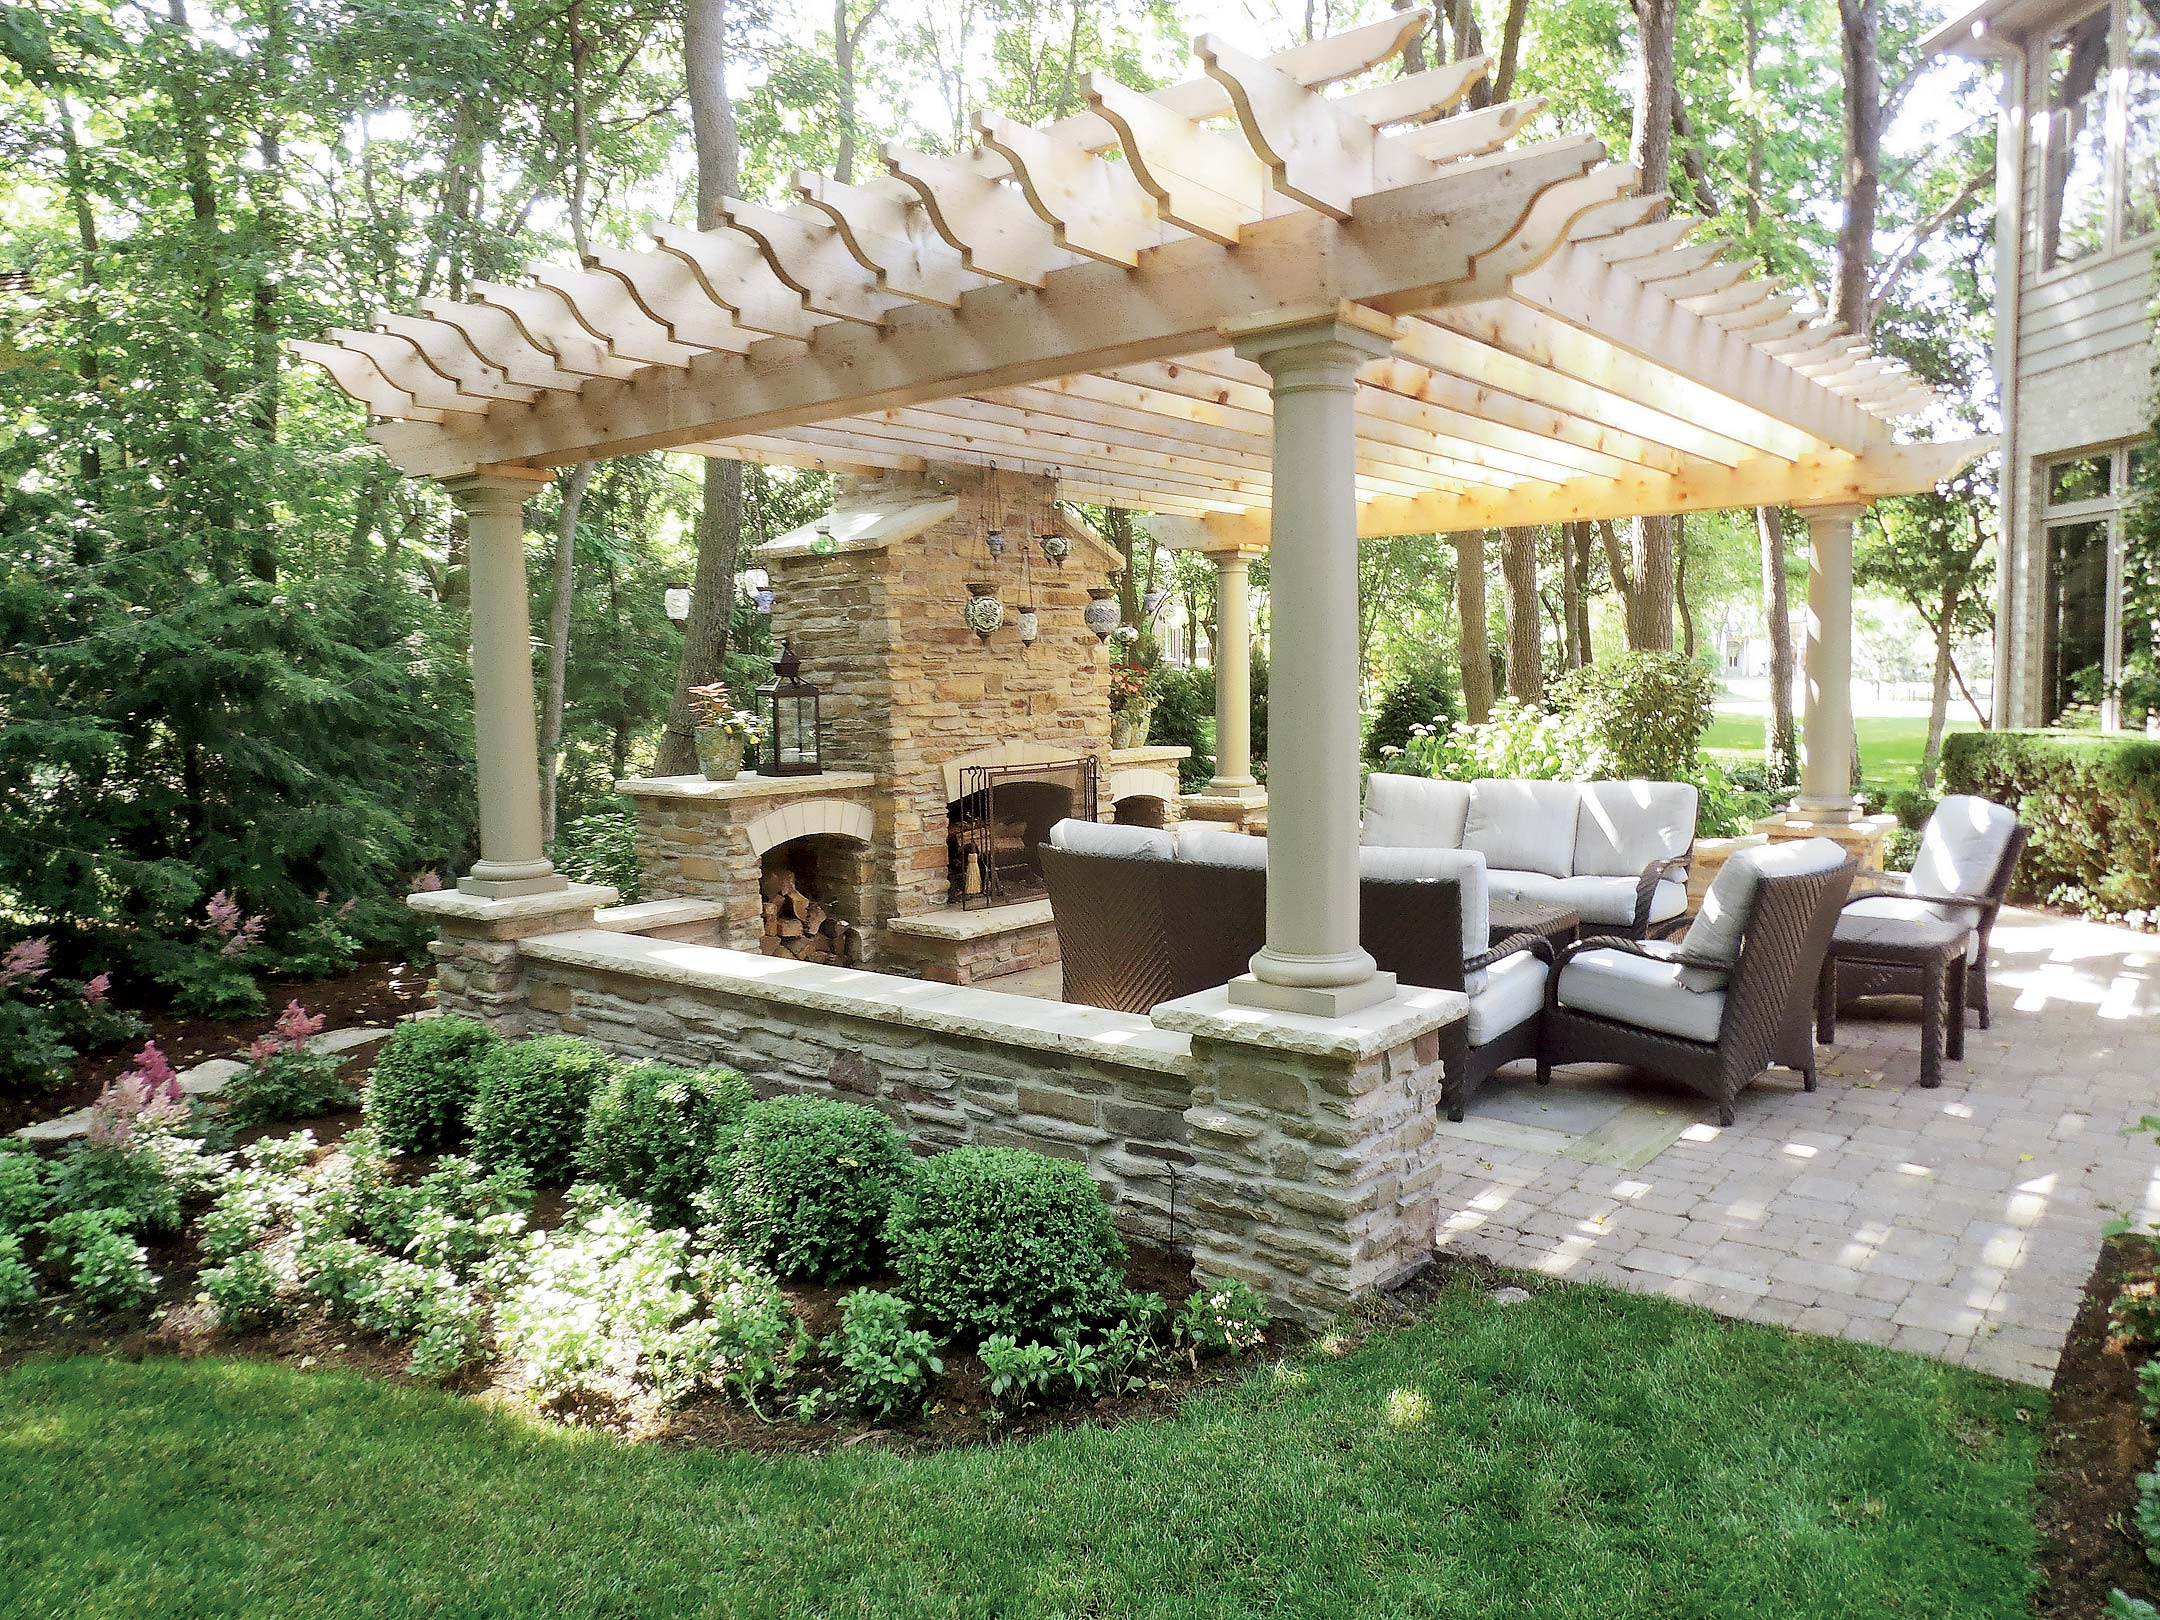 Backyard structures for entertaining for Outdoor room with fireplace